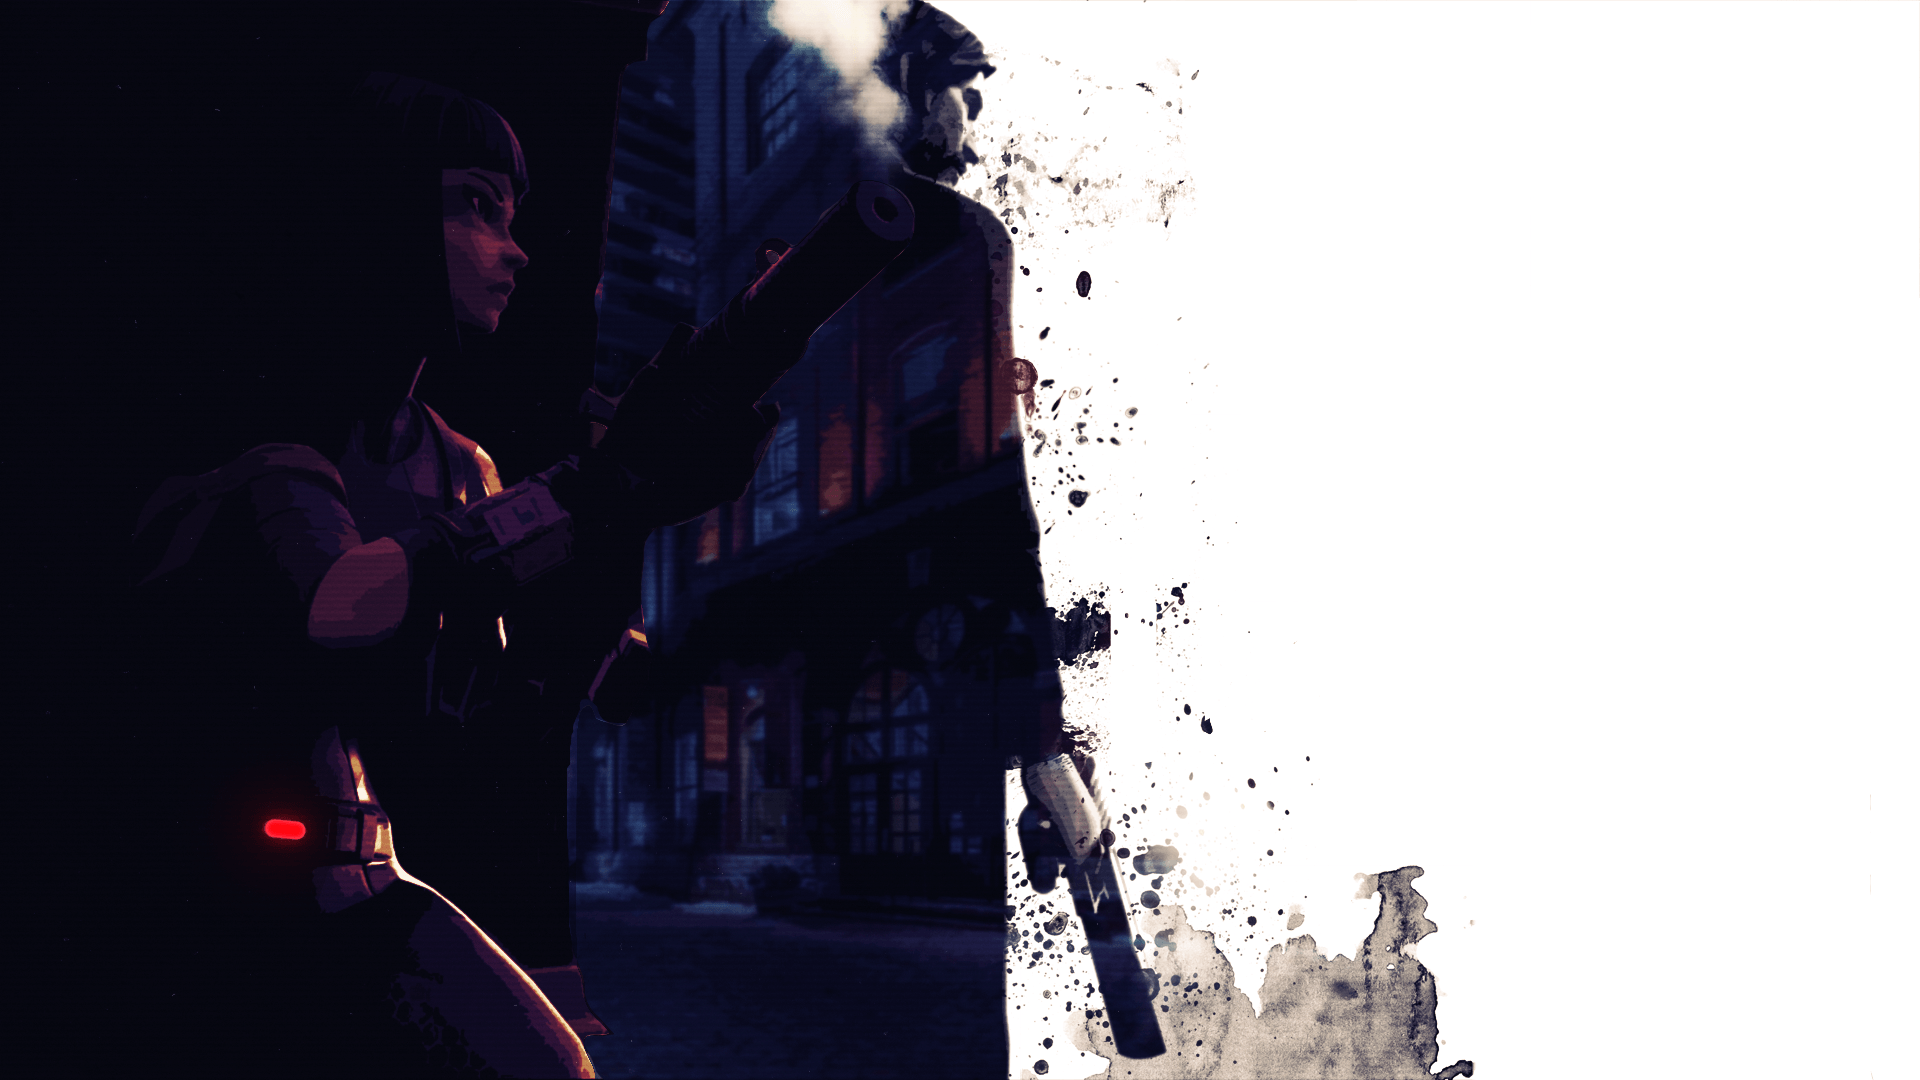 The Reaper (John Wick) Wallpaper (Other versions in the comments ...